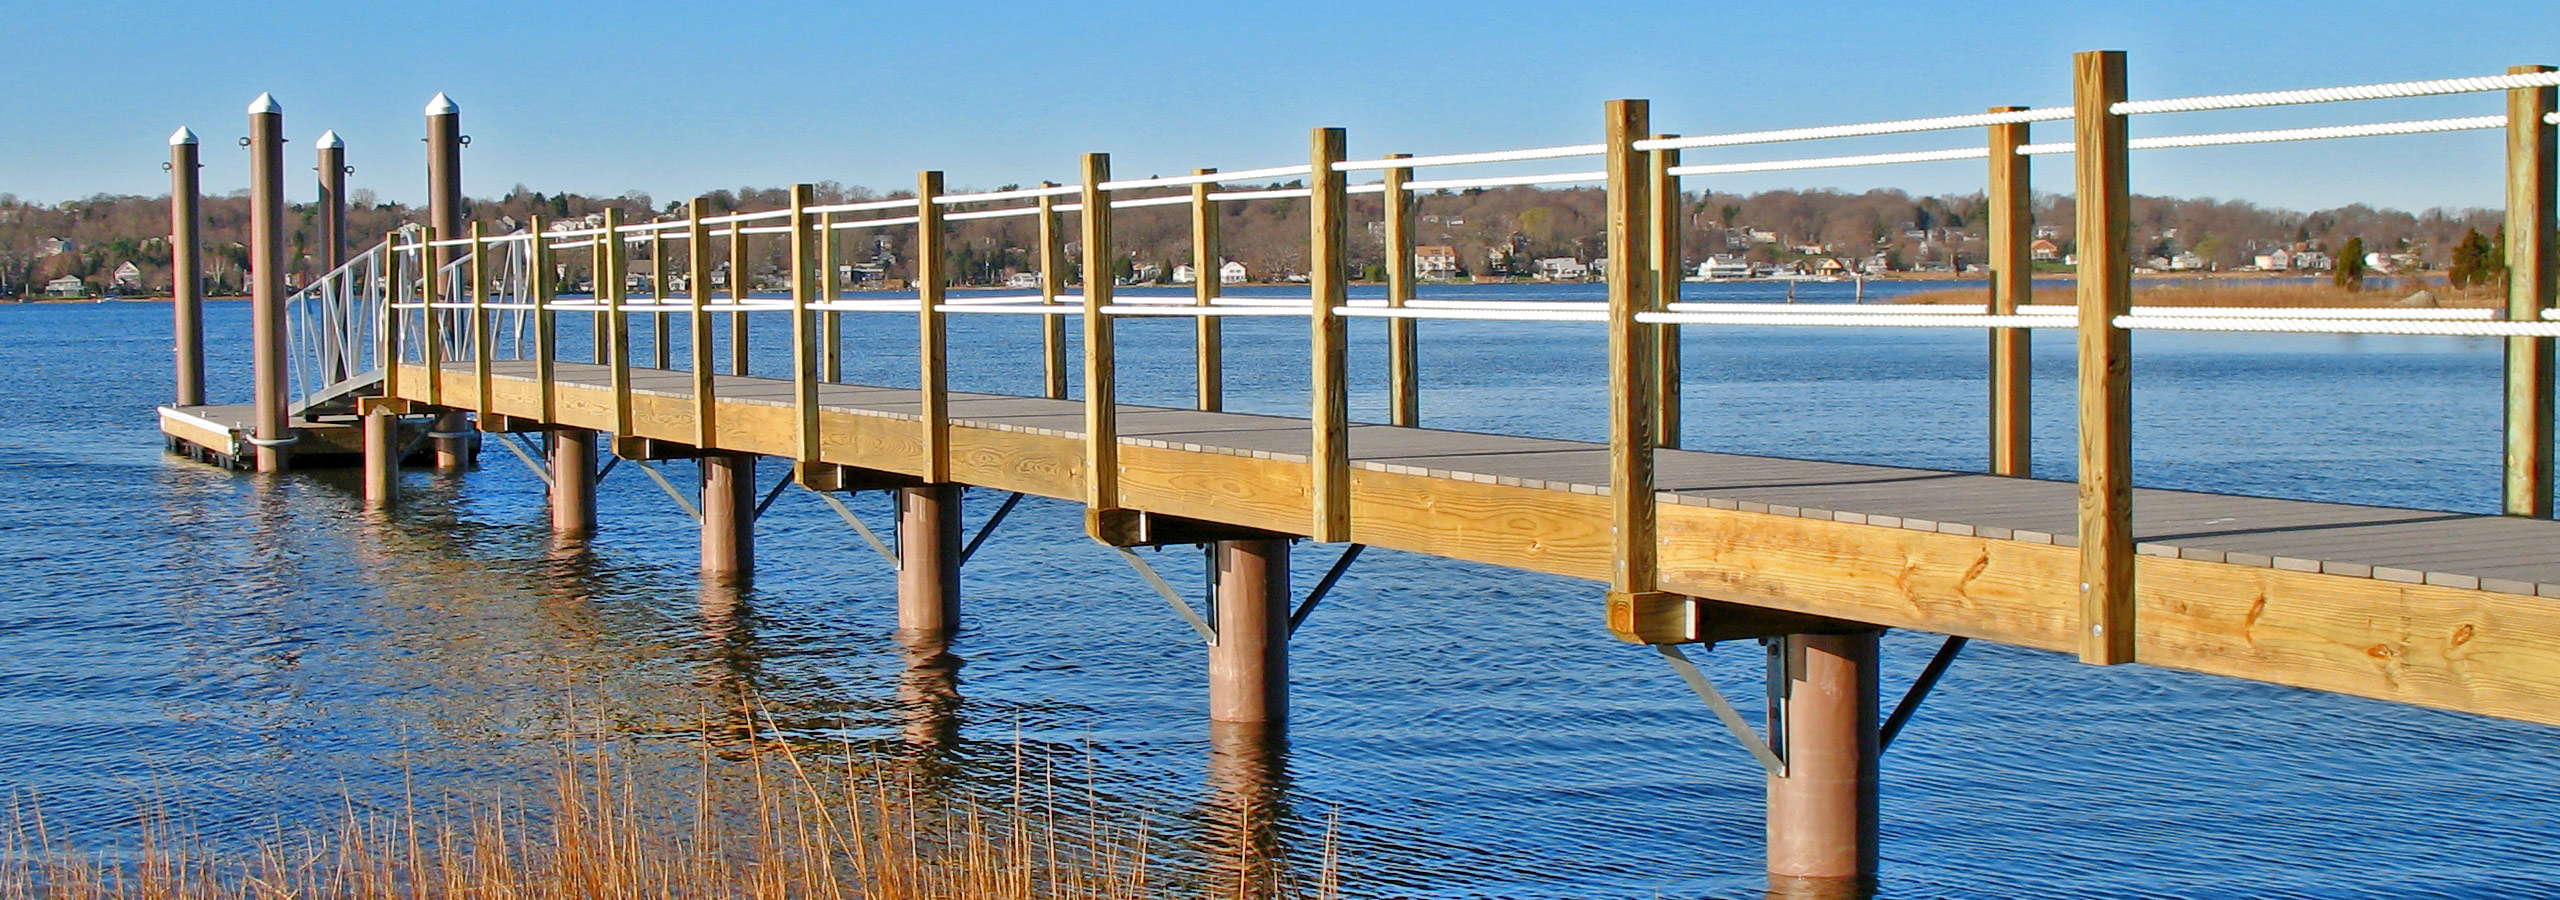 residential-dock-warren-ri-1